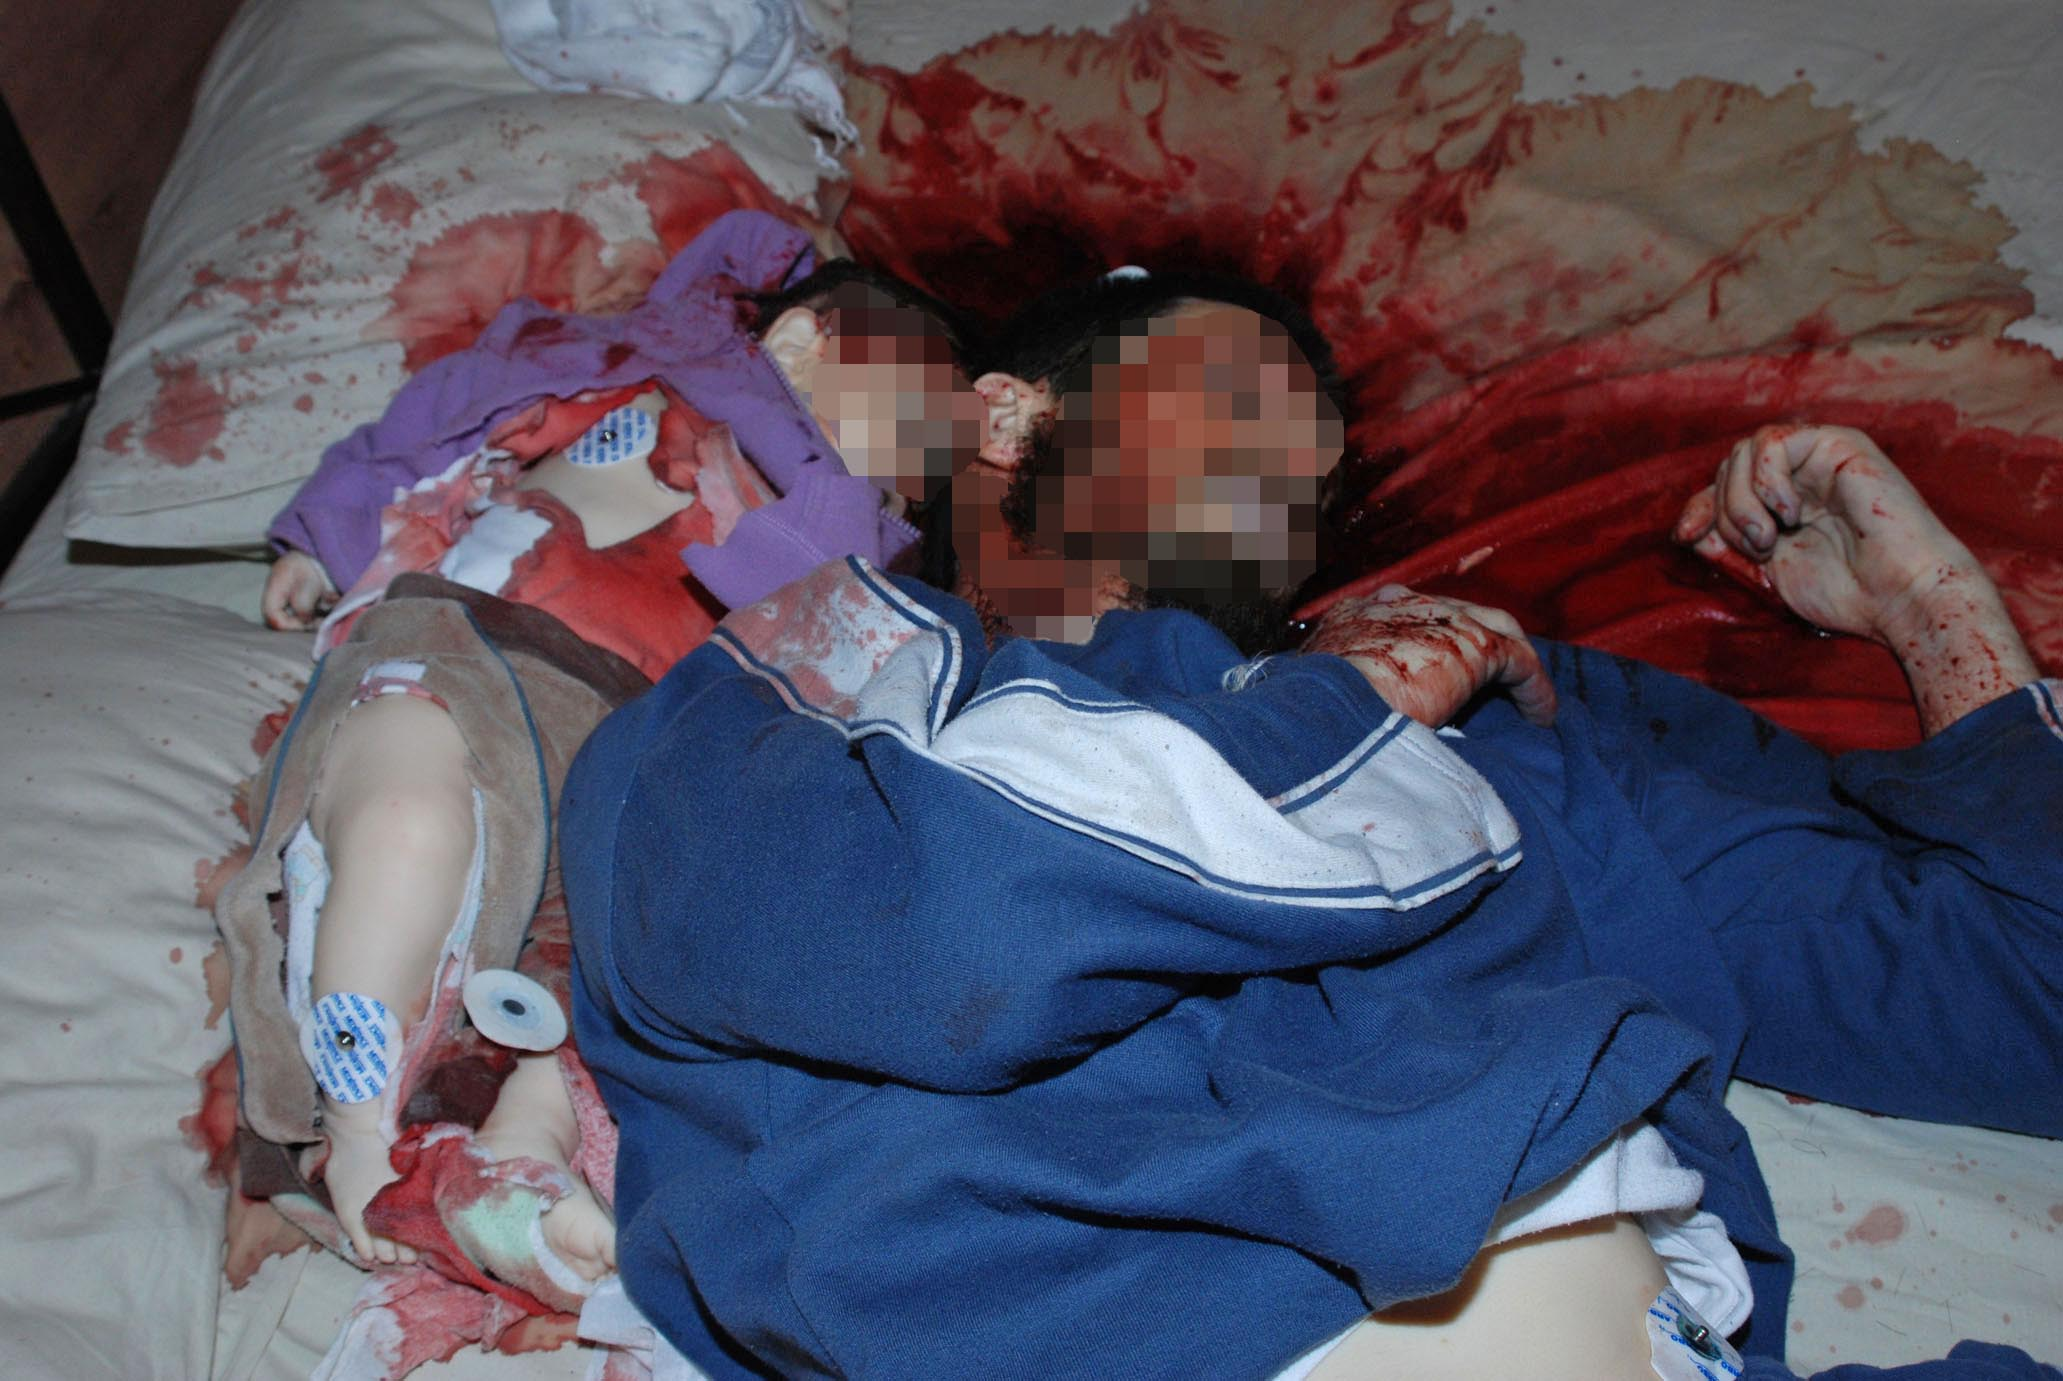 PICTURES OF BRUTAL MURDERS OF AN ISRAELI FAMILY BY PALESTINIAN ...